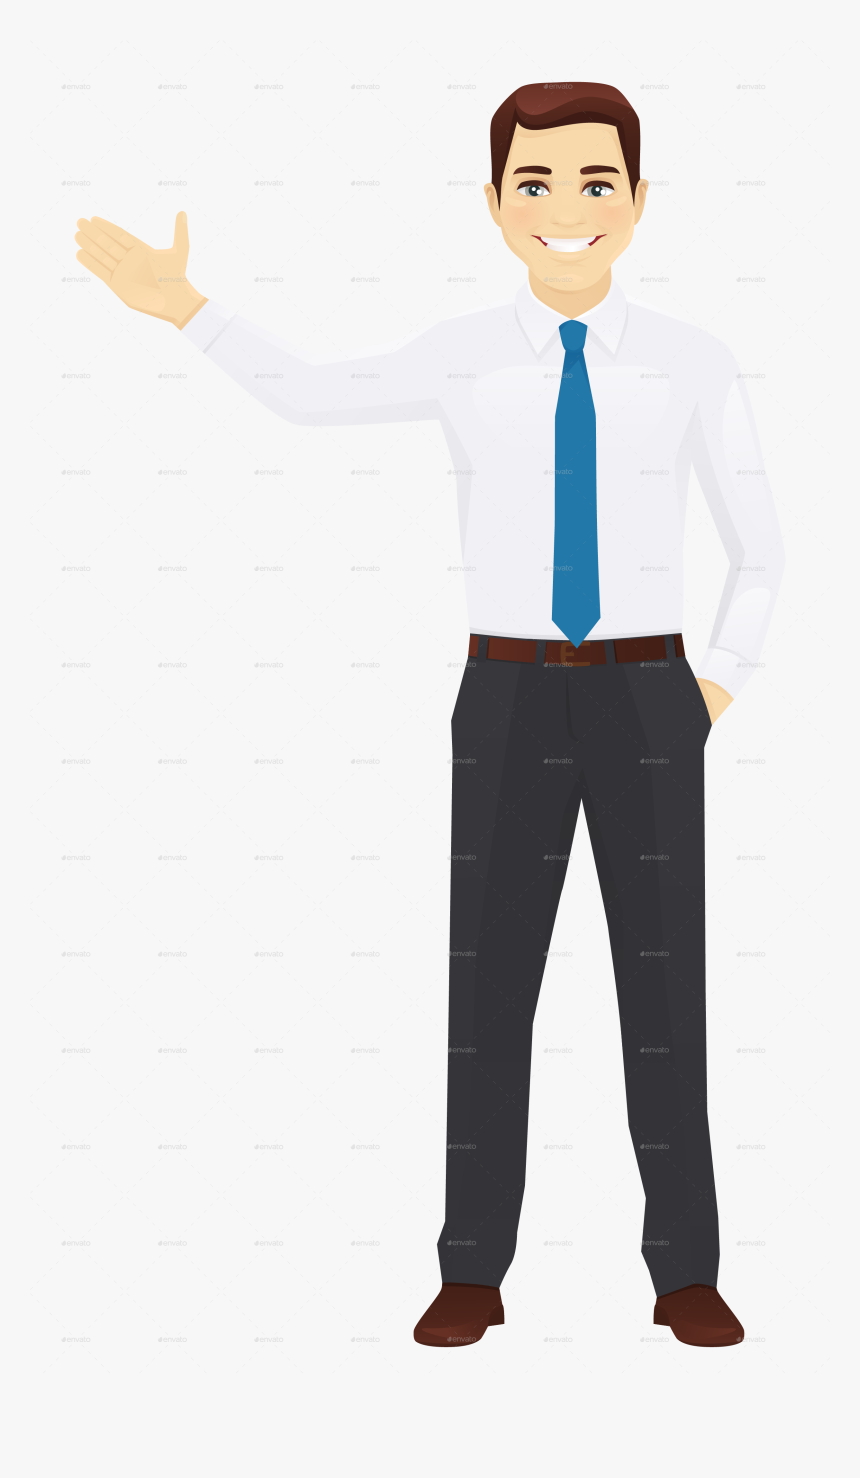 Vector Office Man Standing Professional Business Man Images Png Transparent Png Transparent Png Image Pngitem All images and logos are crafted with great workmanship. vector office man standing